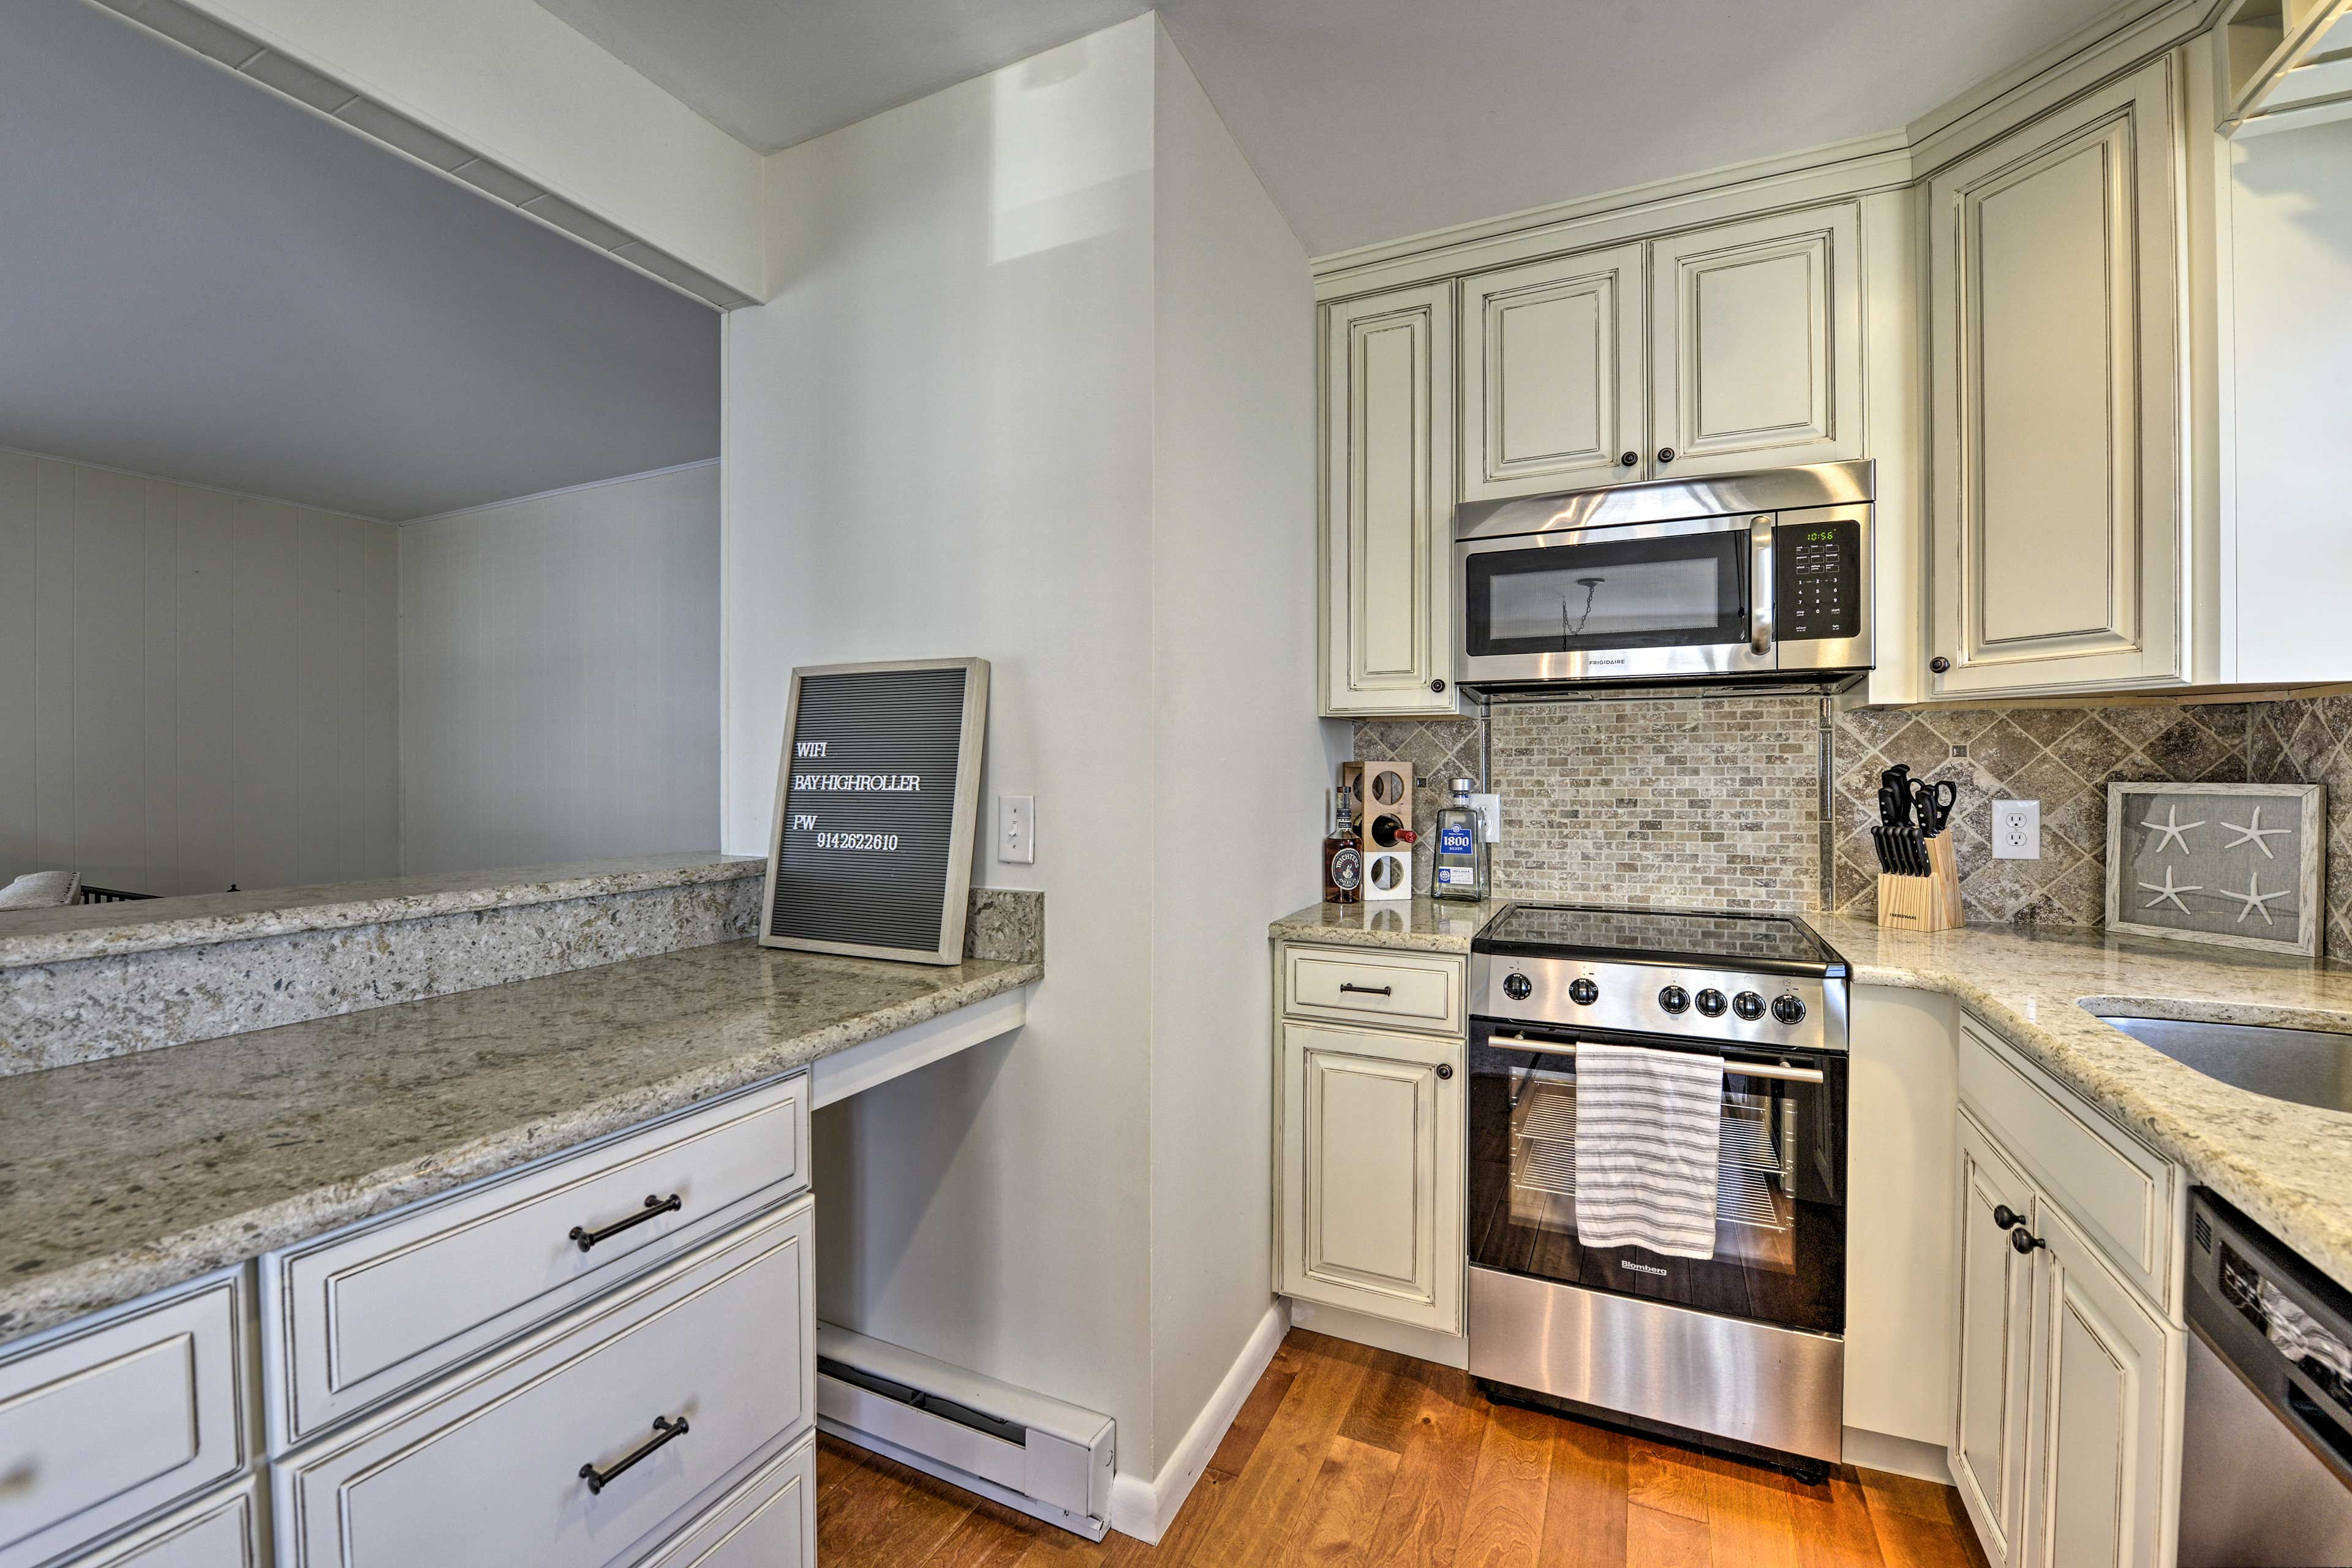 The fully equipped kitchen includes a serving window.